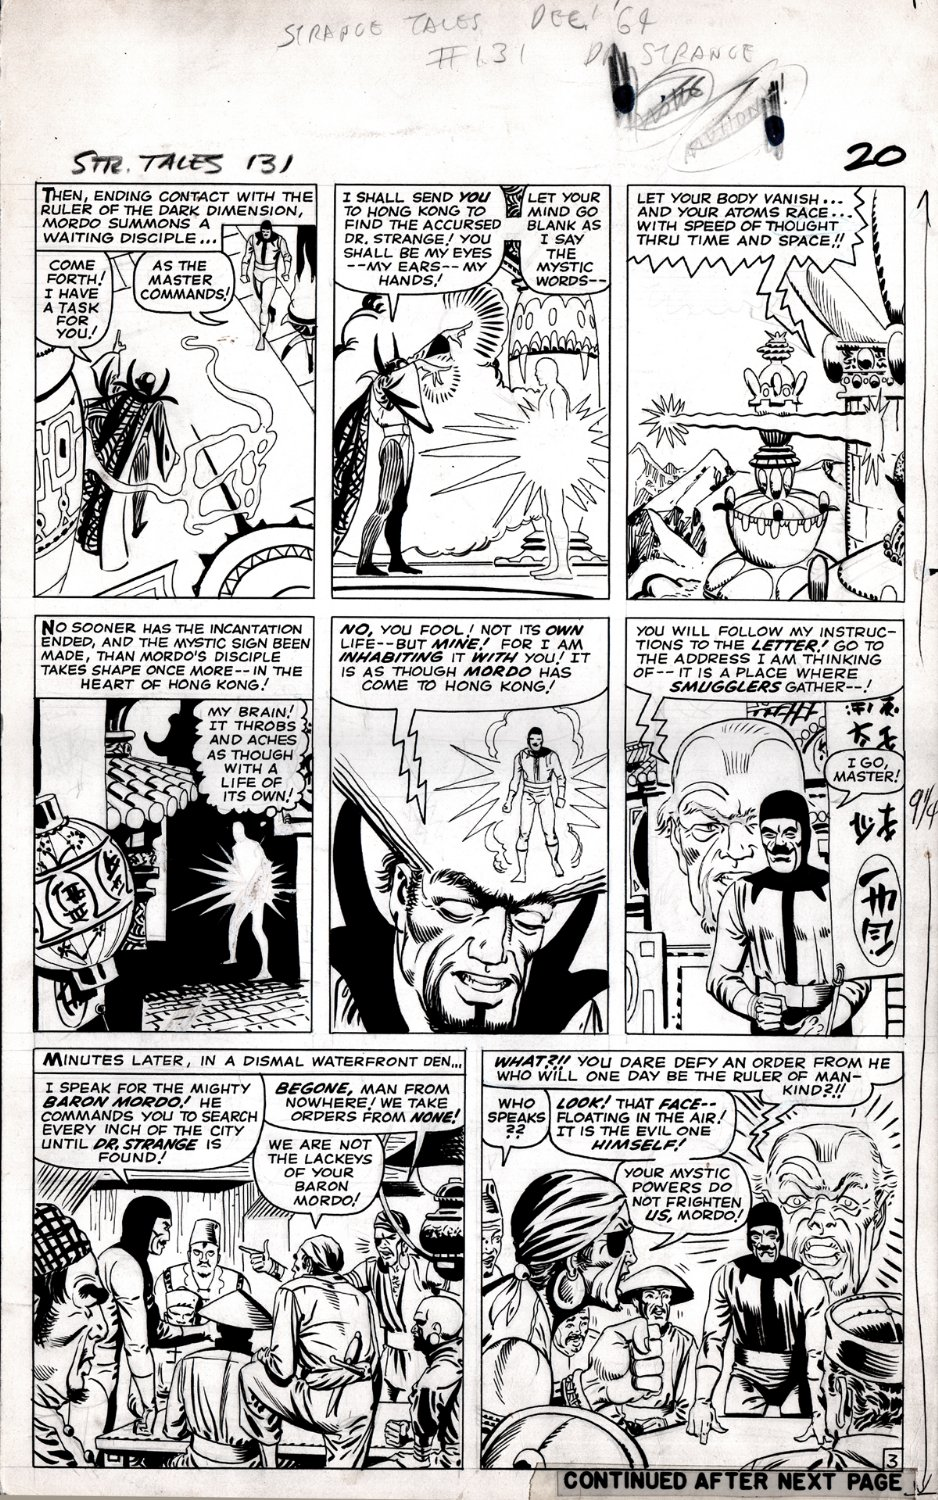 Strange Tales #131 p 3 (BARON MORDO USES HIS POWERS THROUGHOUT ENTIRE PAGE SEARCHING FOR DR STRANGE!) 1964